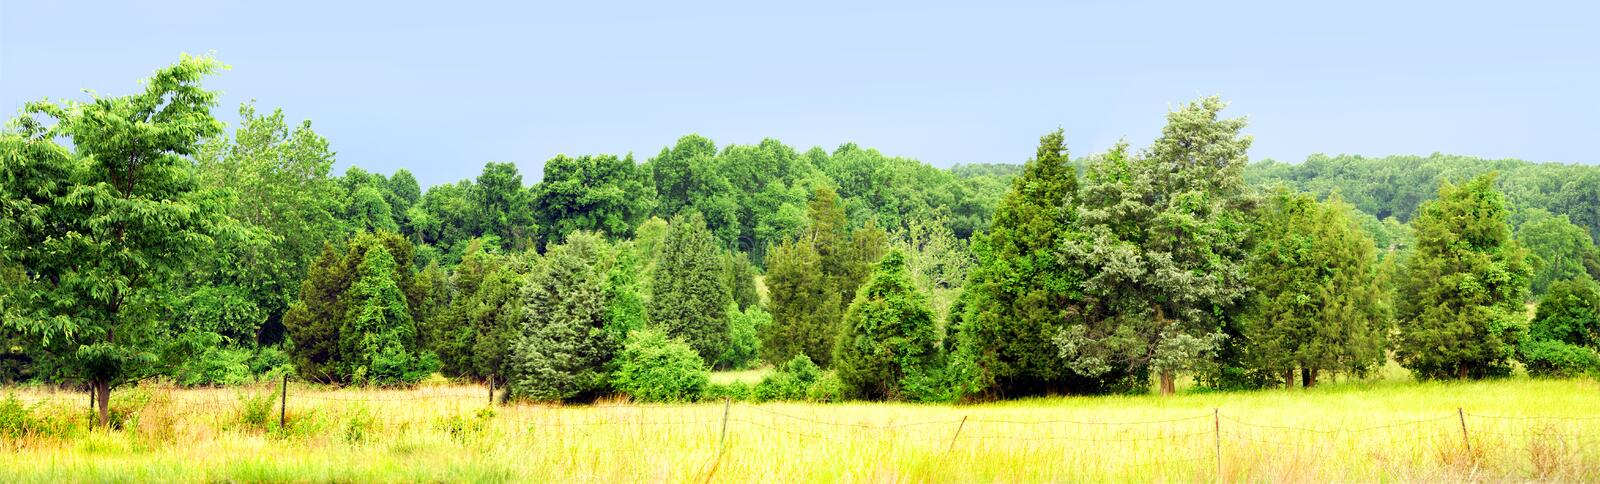 Download Tree and field panorama stock image. Image of outdoors - 4982665